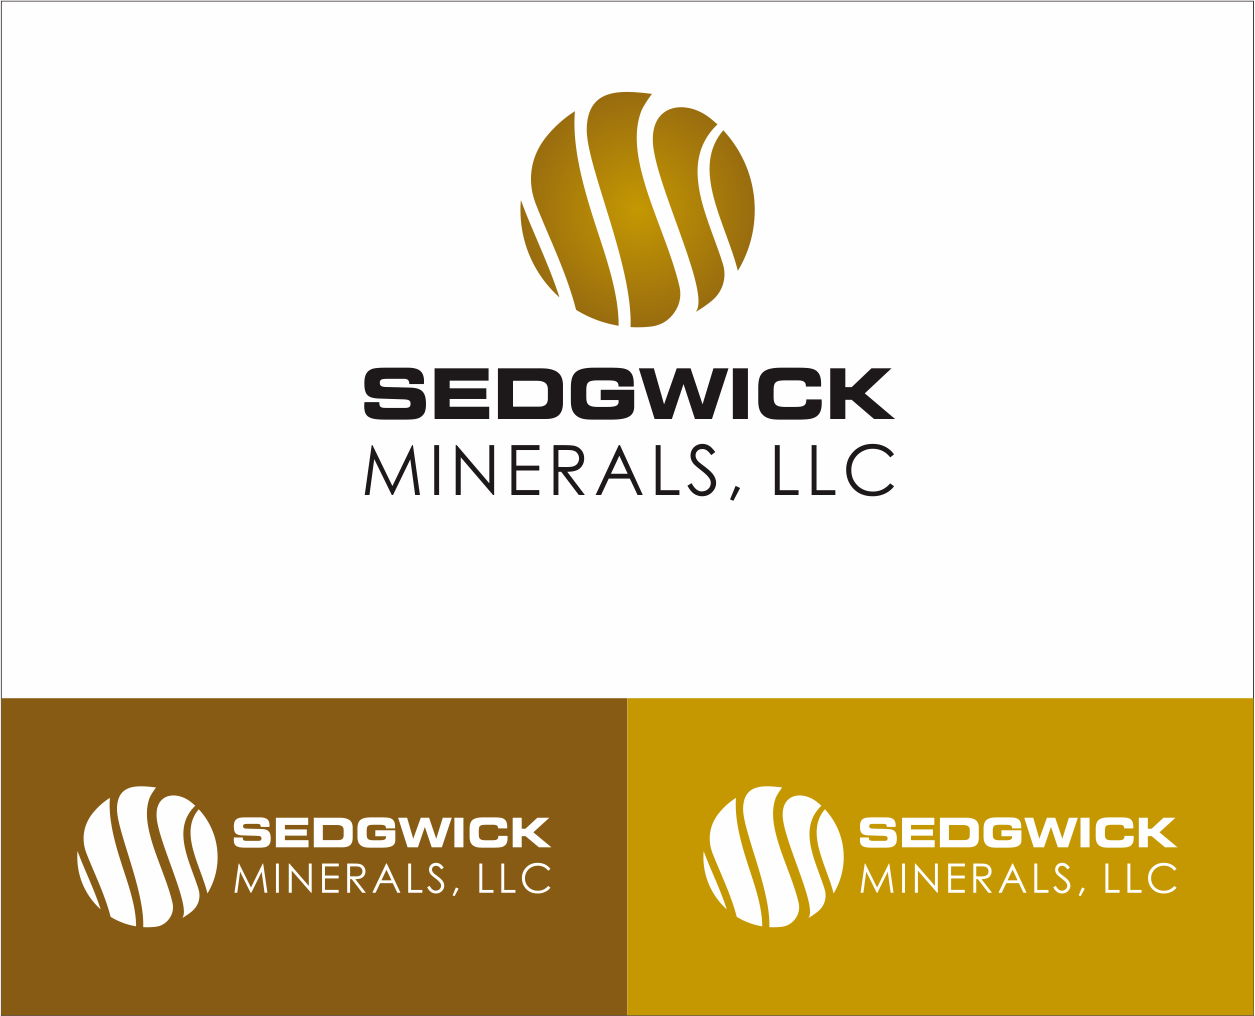 Logo Design by Armada Jamaluddin - Entry No. 72 in the Logo Design Contest Inspiring Logo Design for Sedgwick Minerals, LLC.